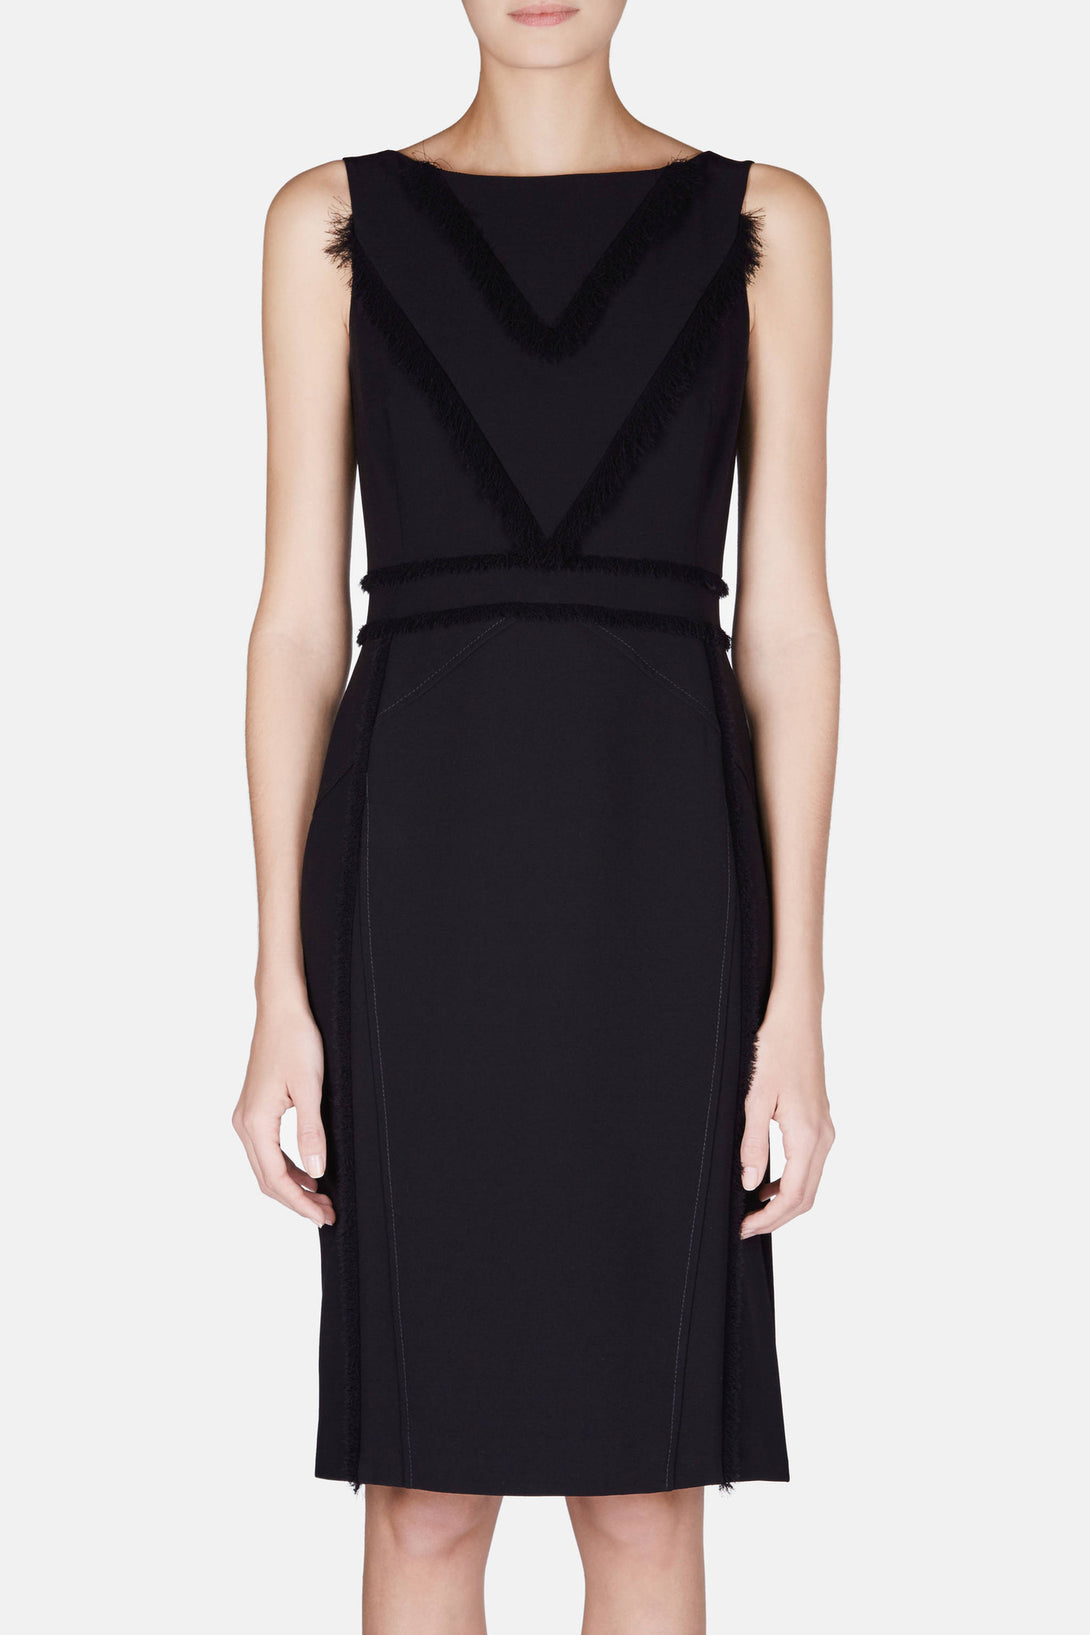 Caulfield Dress - Black